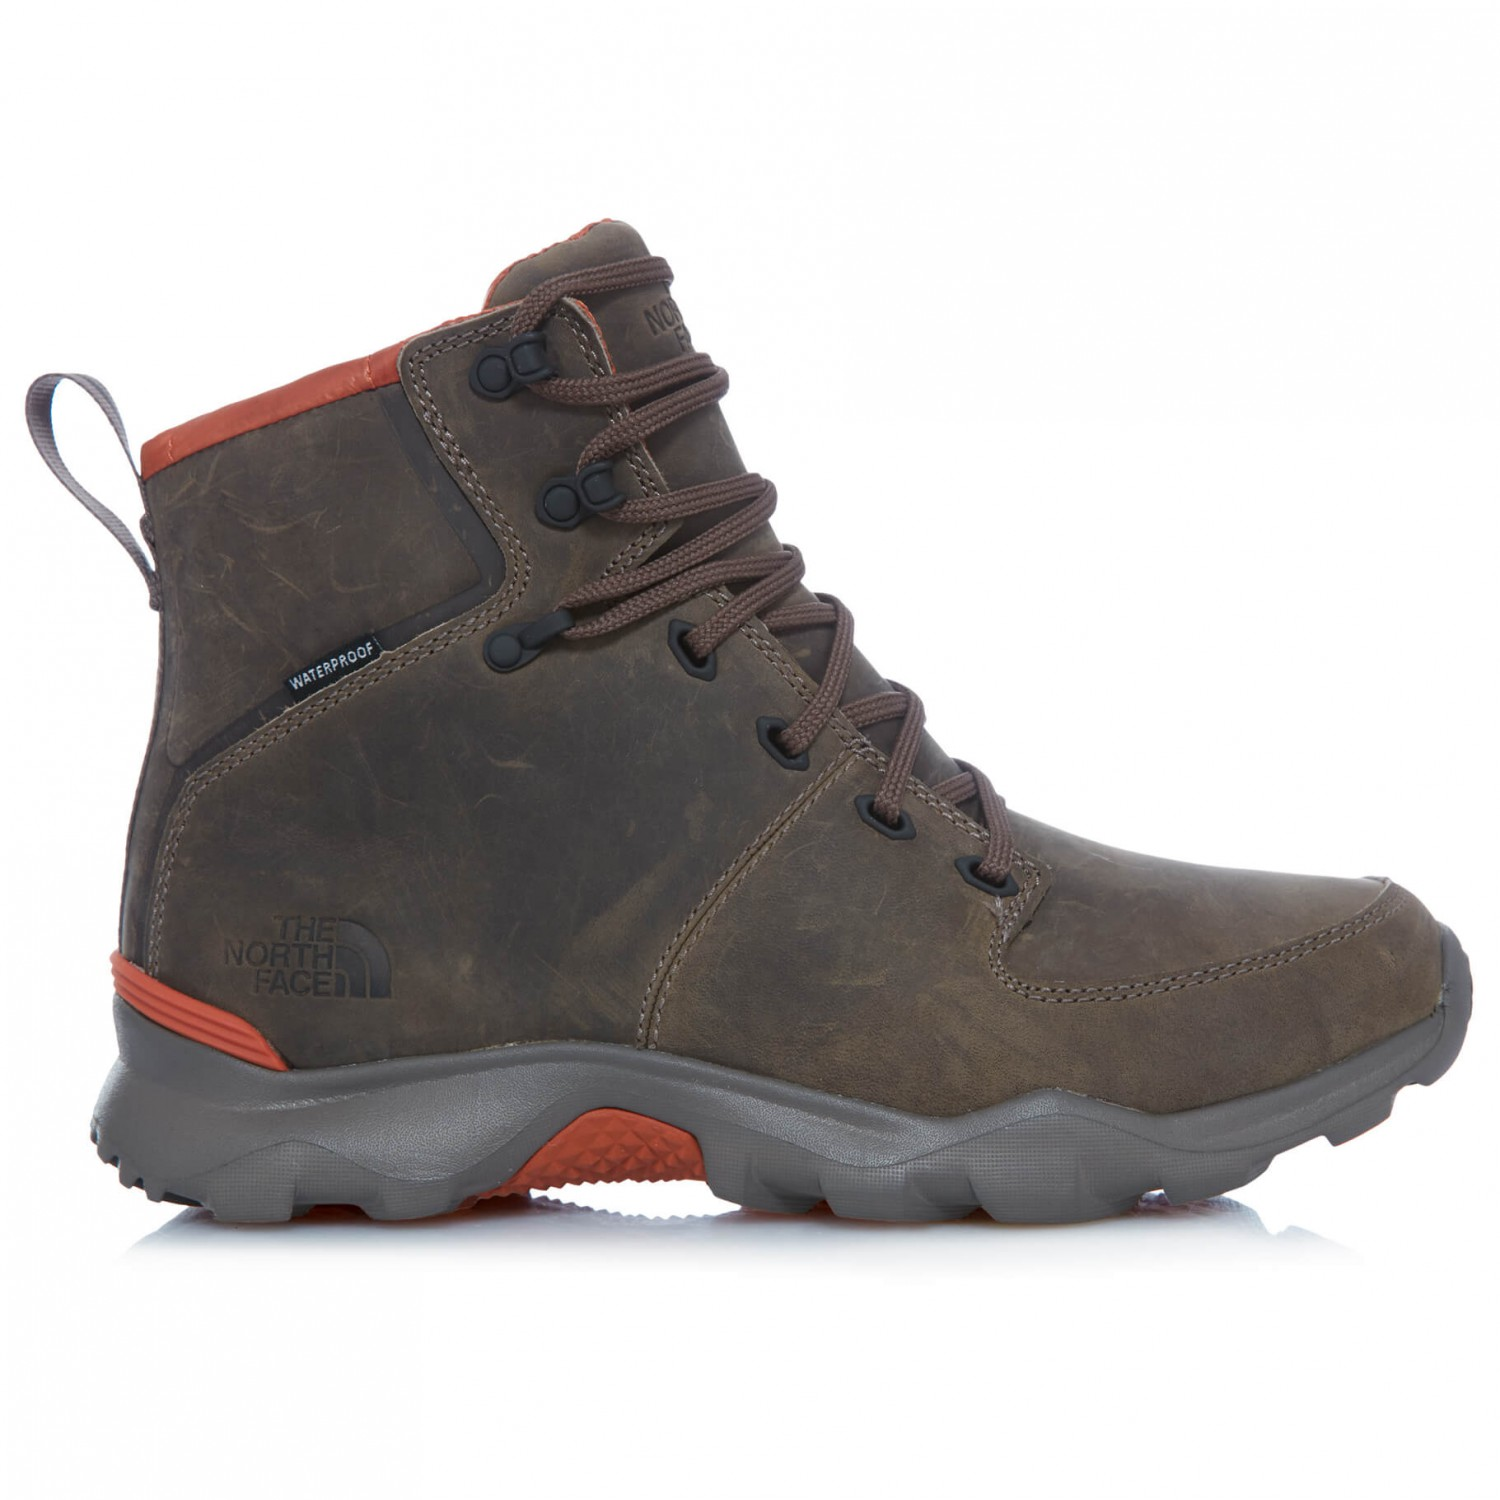 The North Face Chaussures de randonnée THERMOBALL VERSA Hpp4Frf